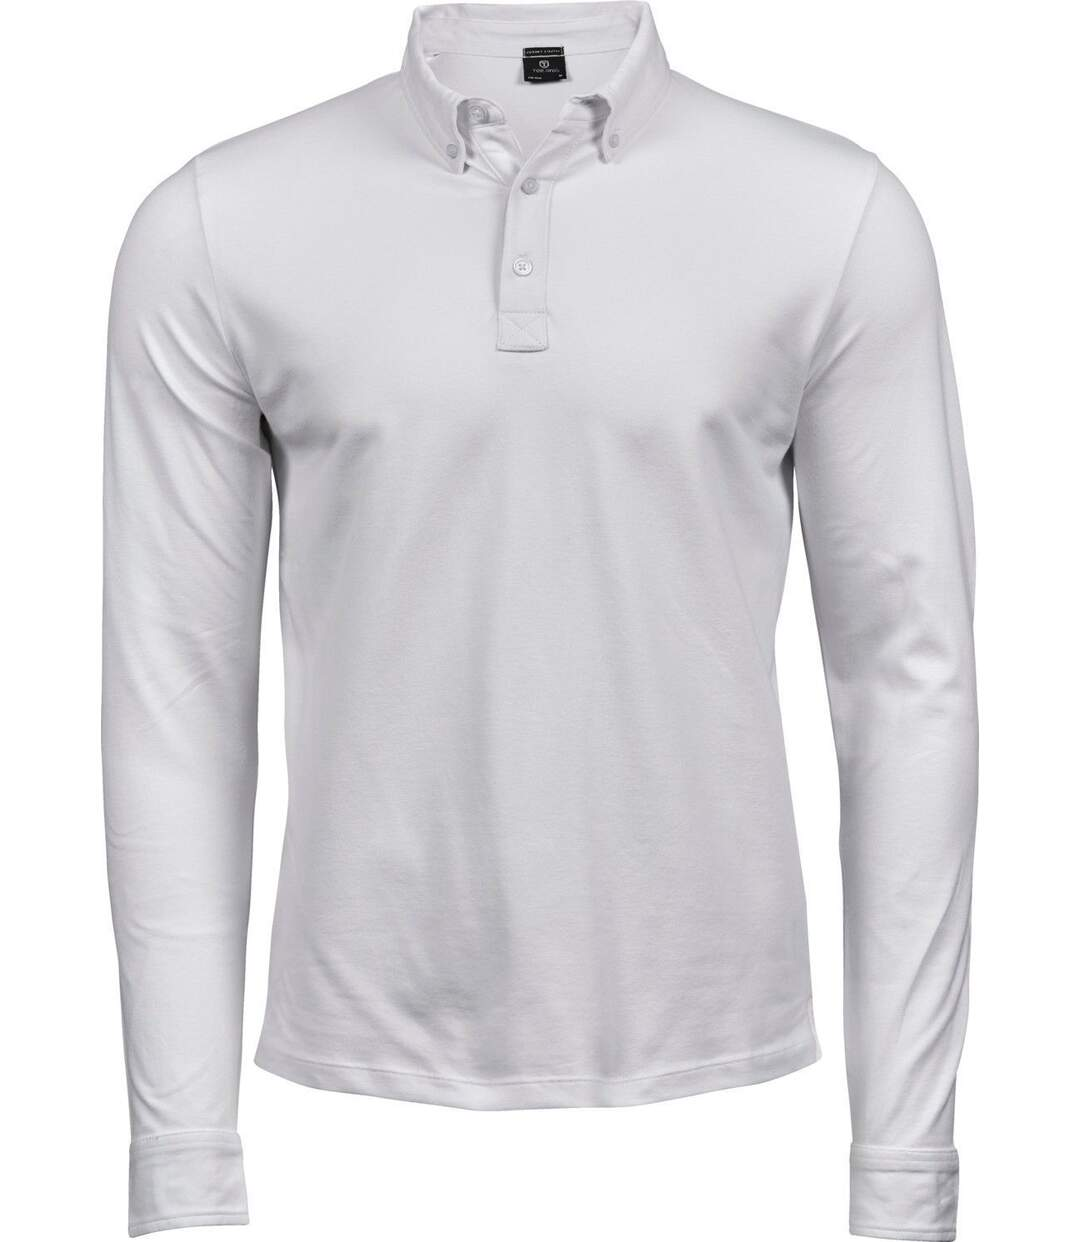 Polo homme luxury stretch - 1412 - blanc - manches longues